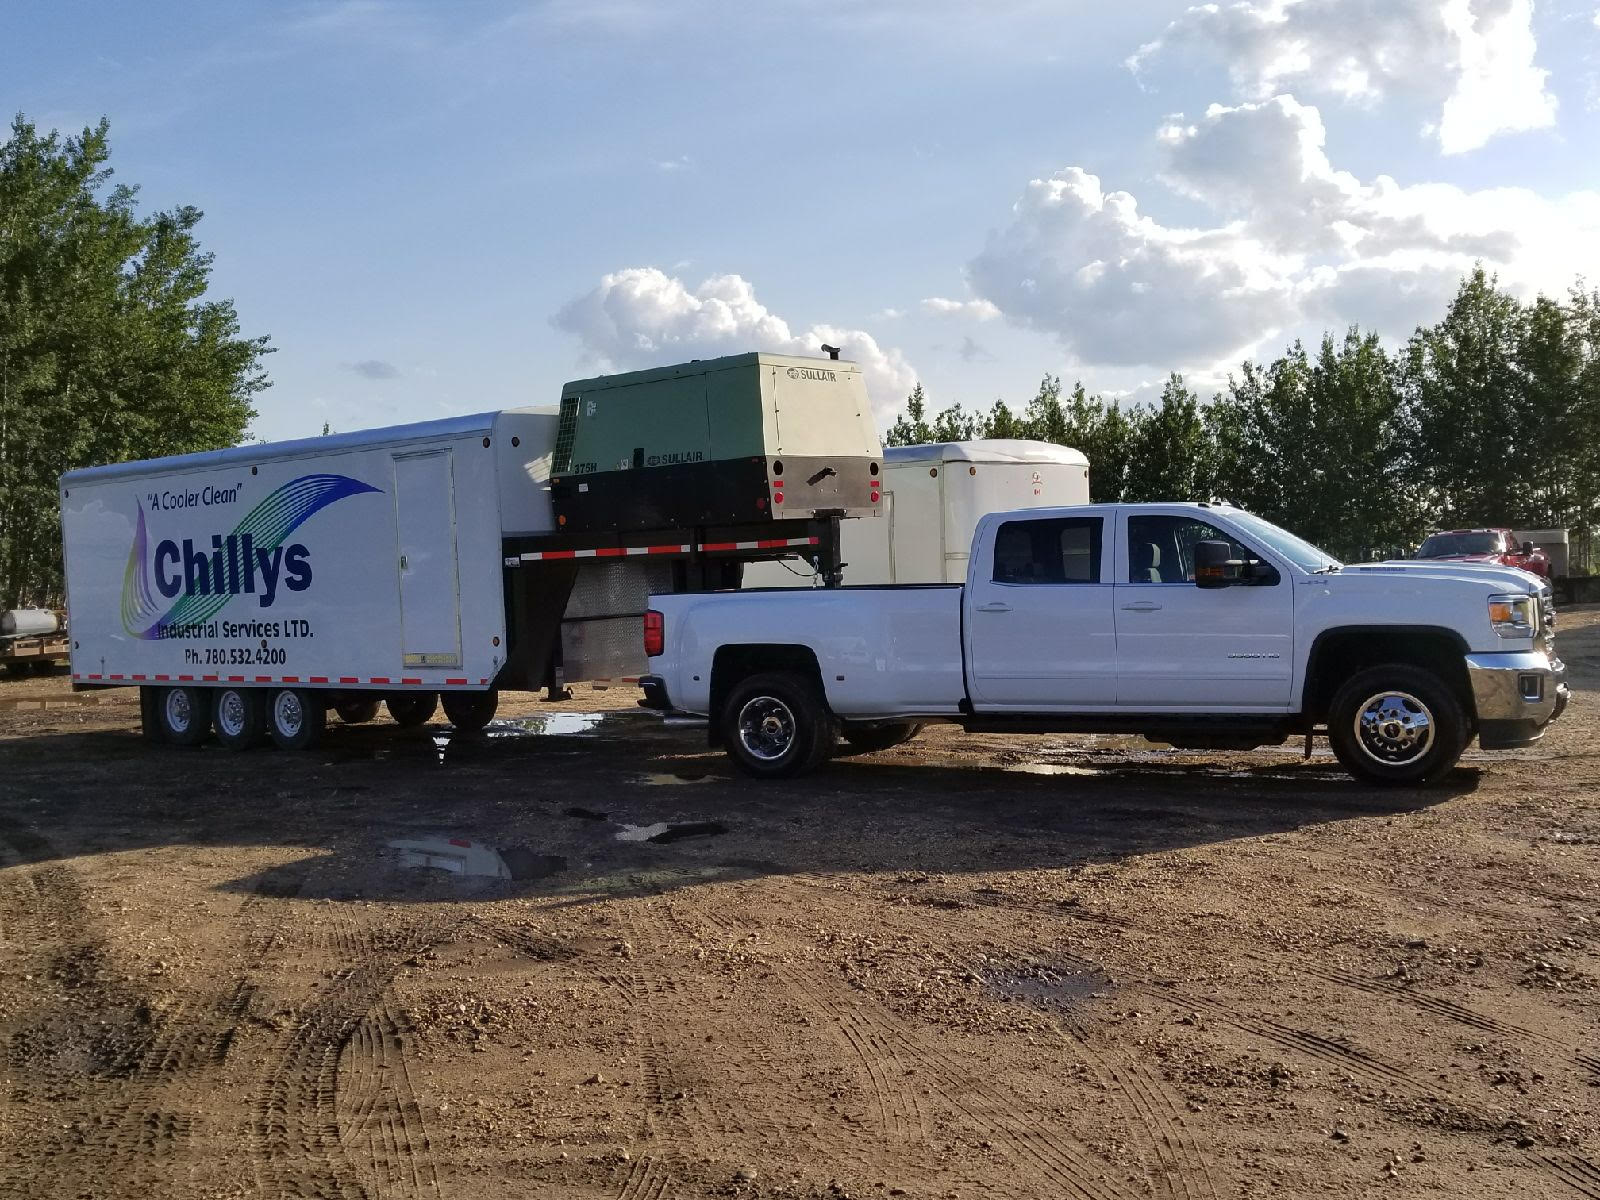 Chillys Industrial Services